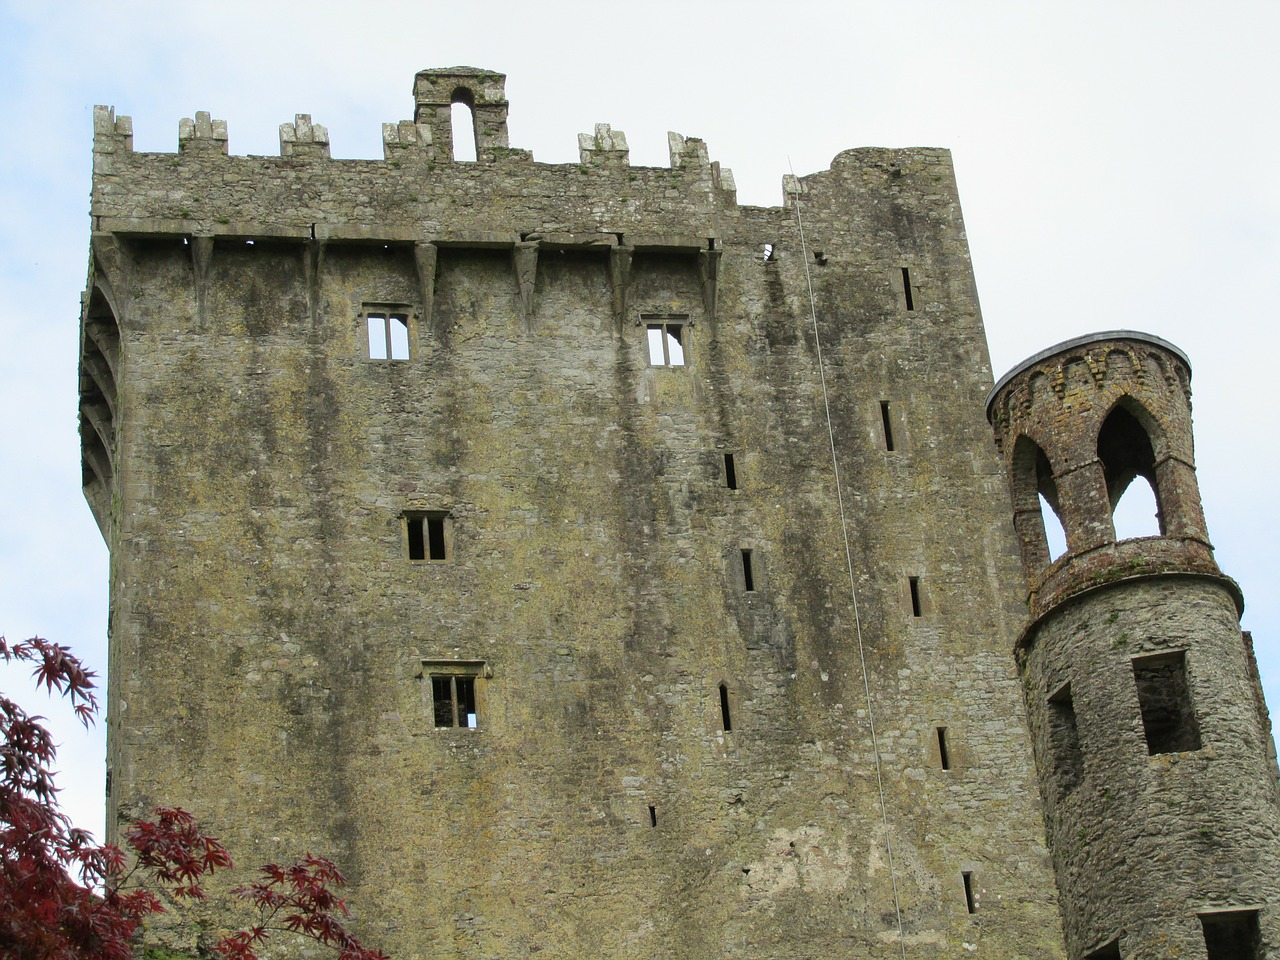 blarney castle,ireland,castle,ruin,medieval,middle ages,free pictures, free photos, free images, royalty free, free illustrations